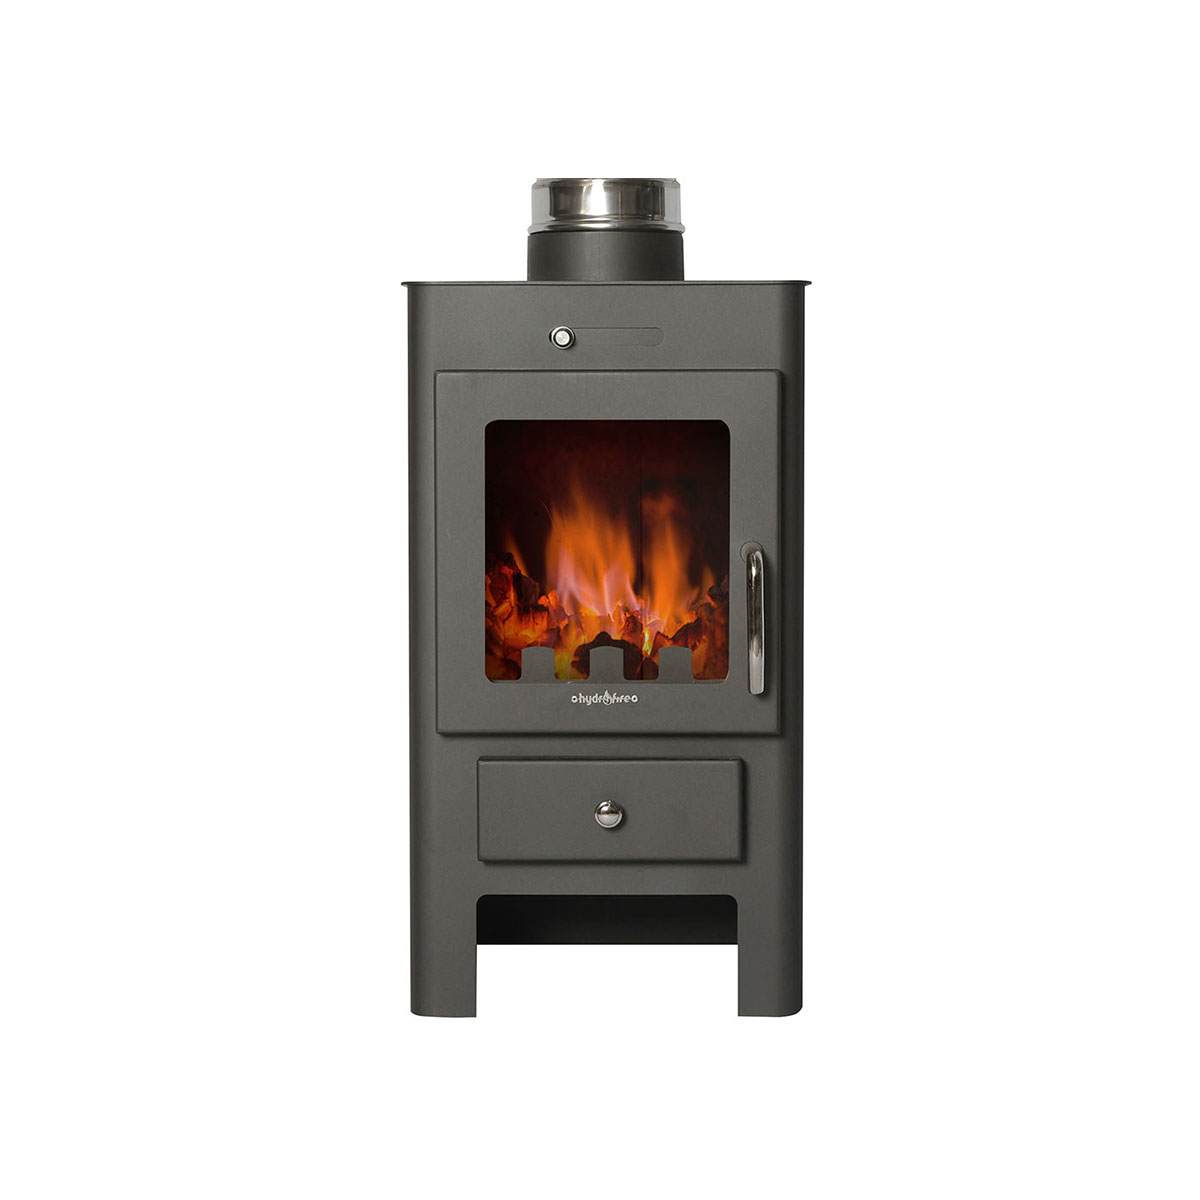 fireplaces accessories hydrofire passat fireplace for sale in johannesburg id 408899552